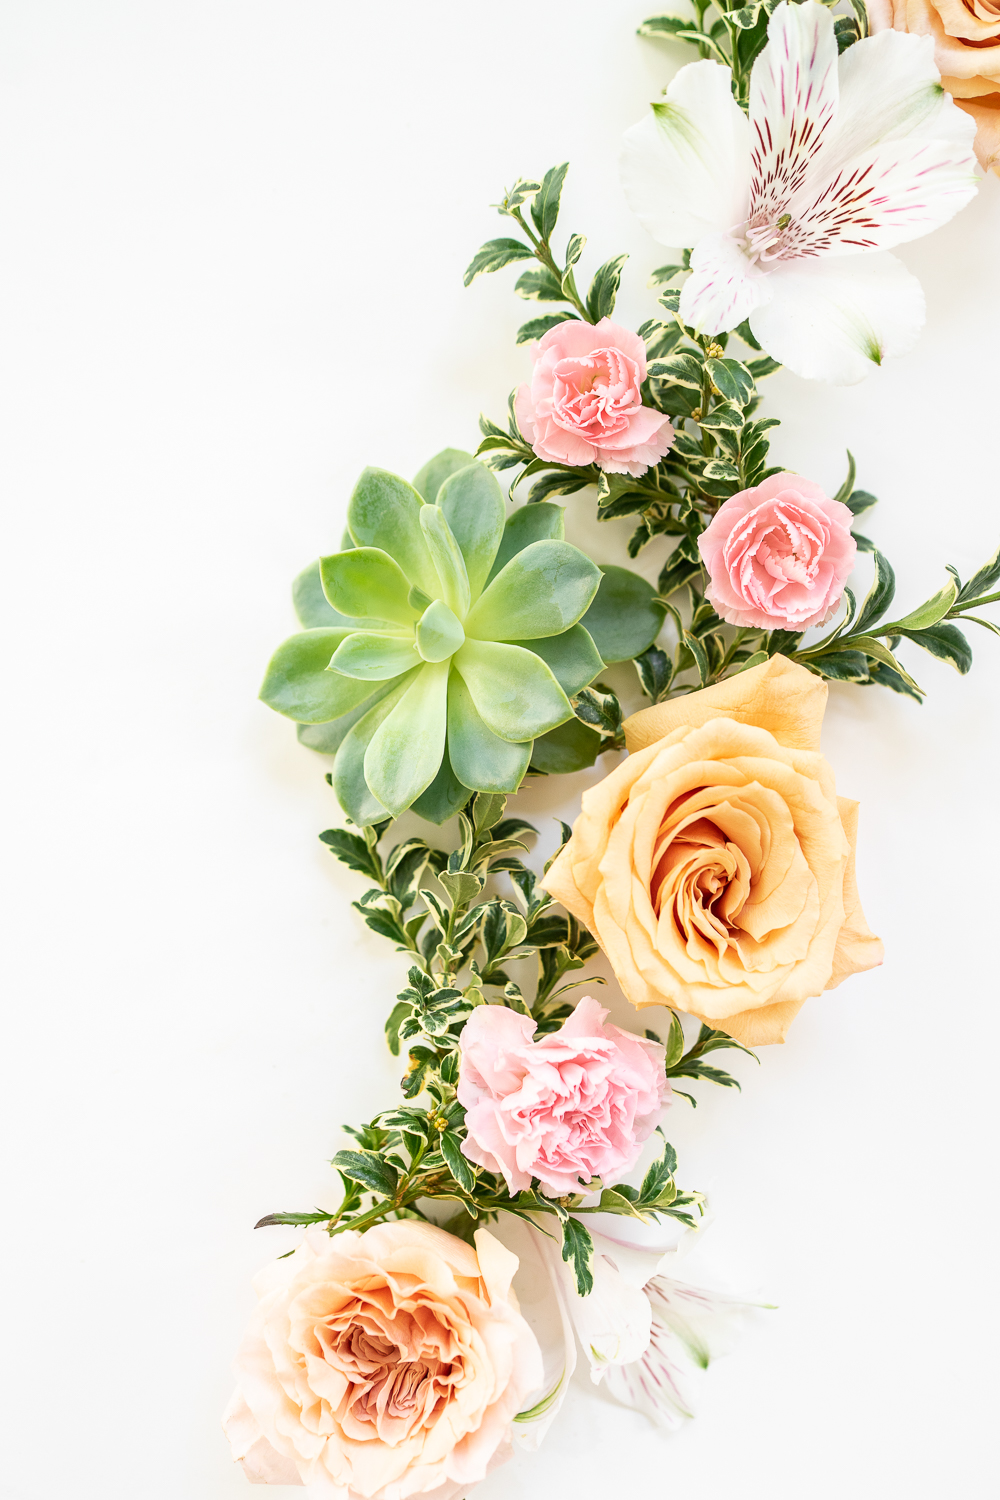 Which Flowers Mean Sympathy?